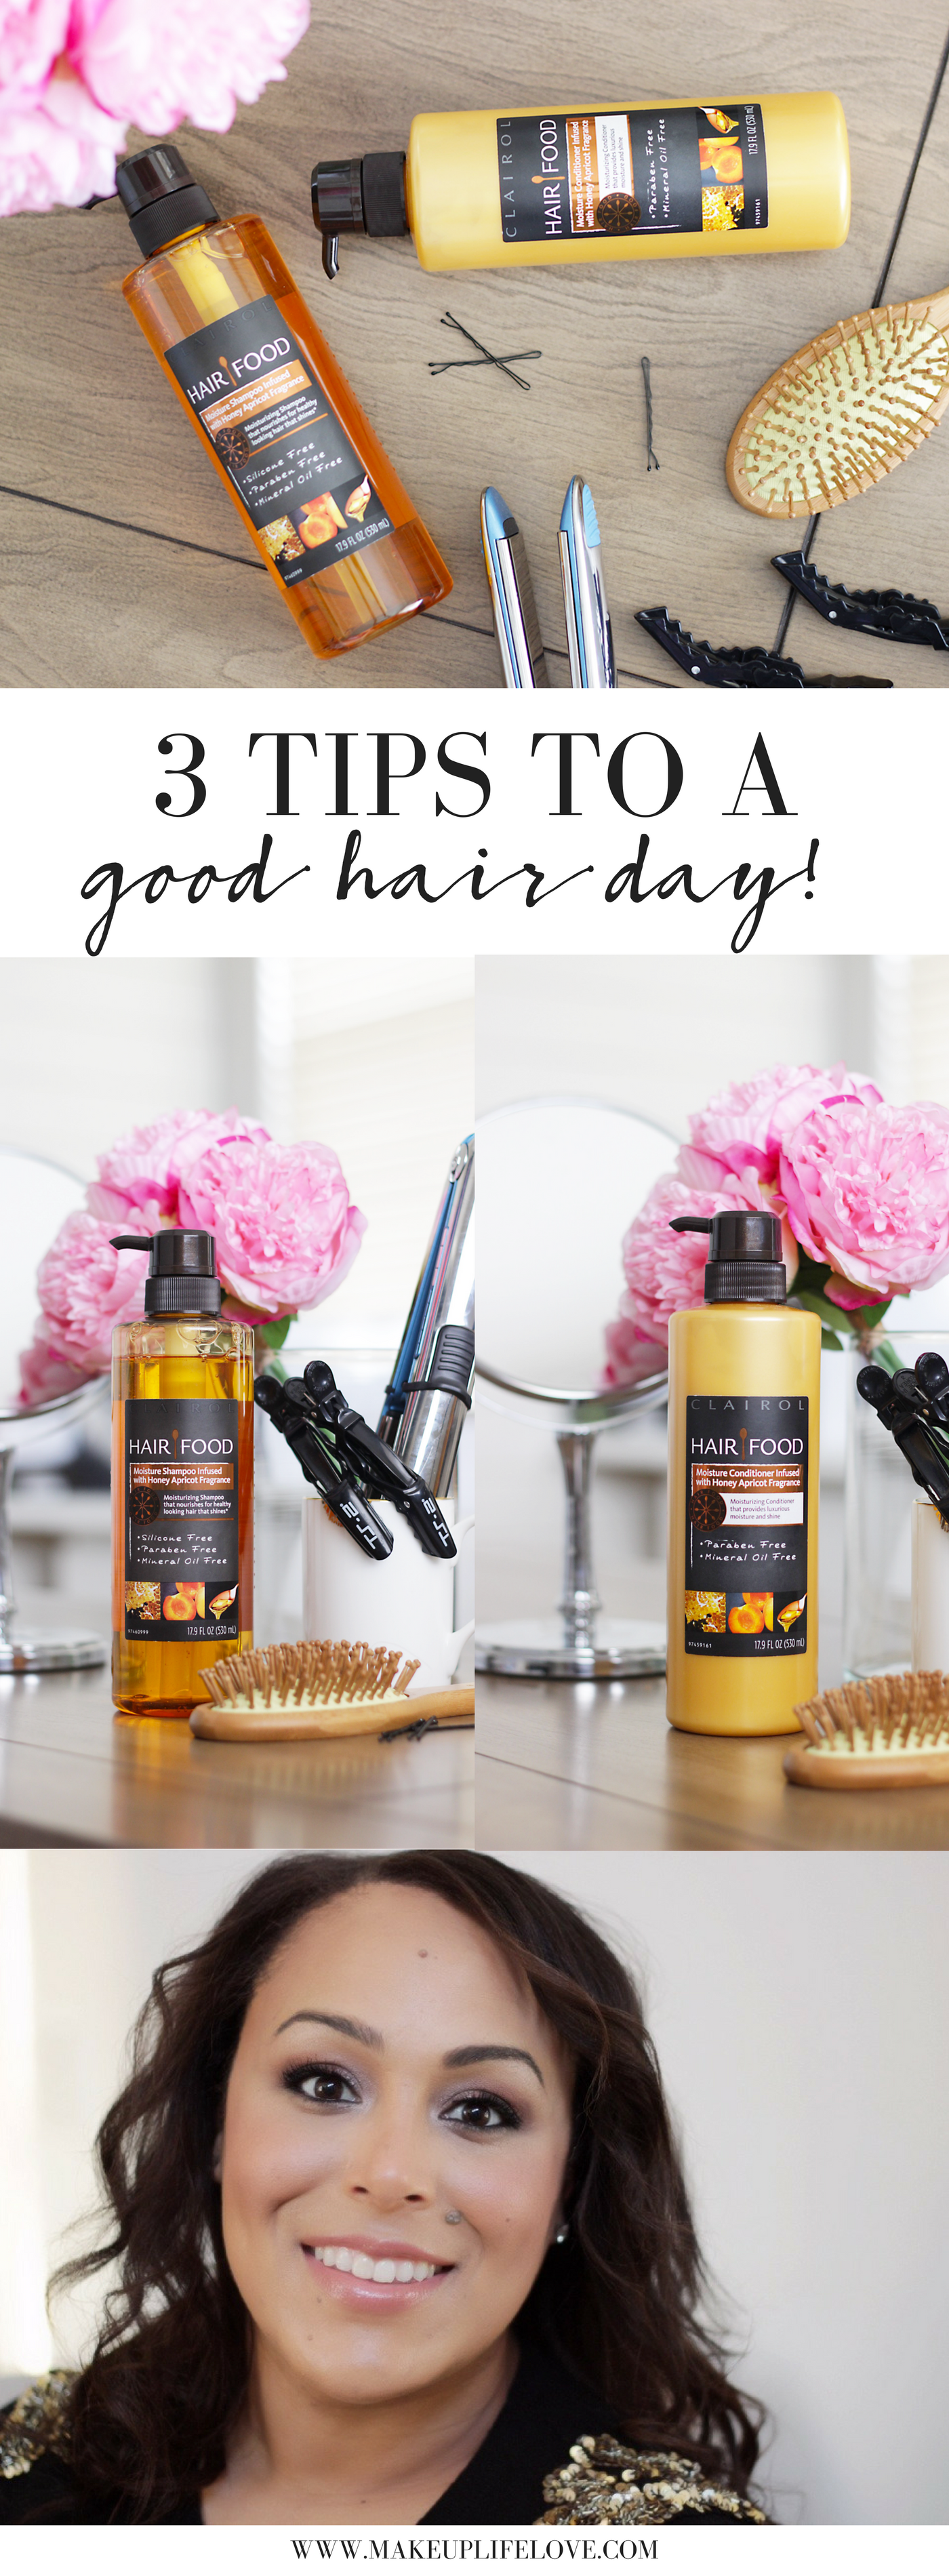 A good hair day is hard to come by, here are 3 EASY tips to do now to ensure a good hair day tomorrow!